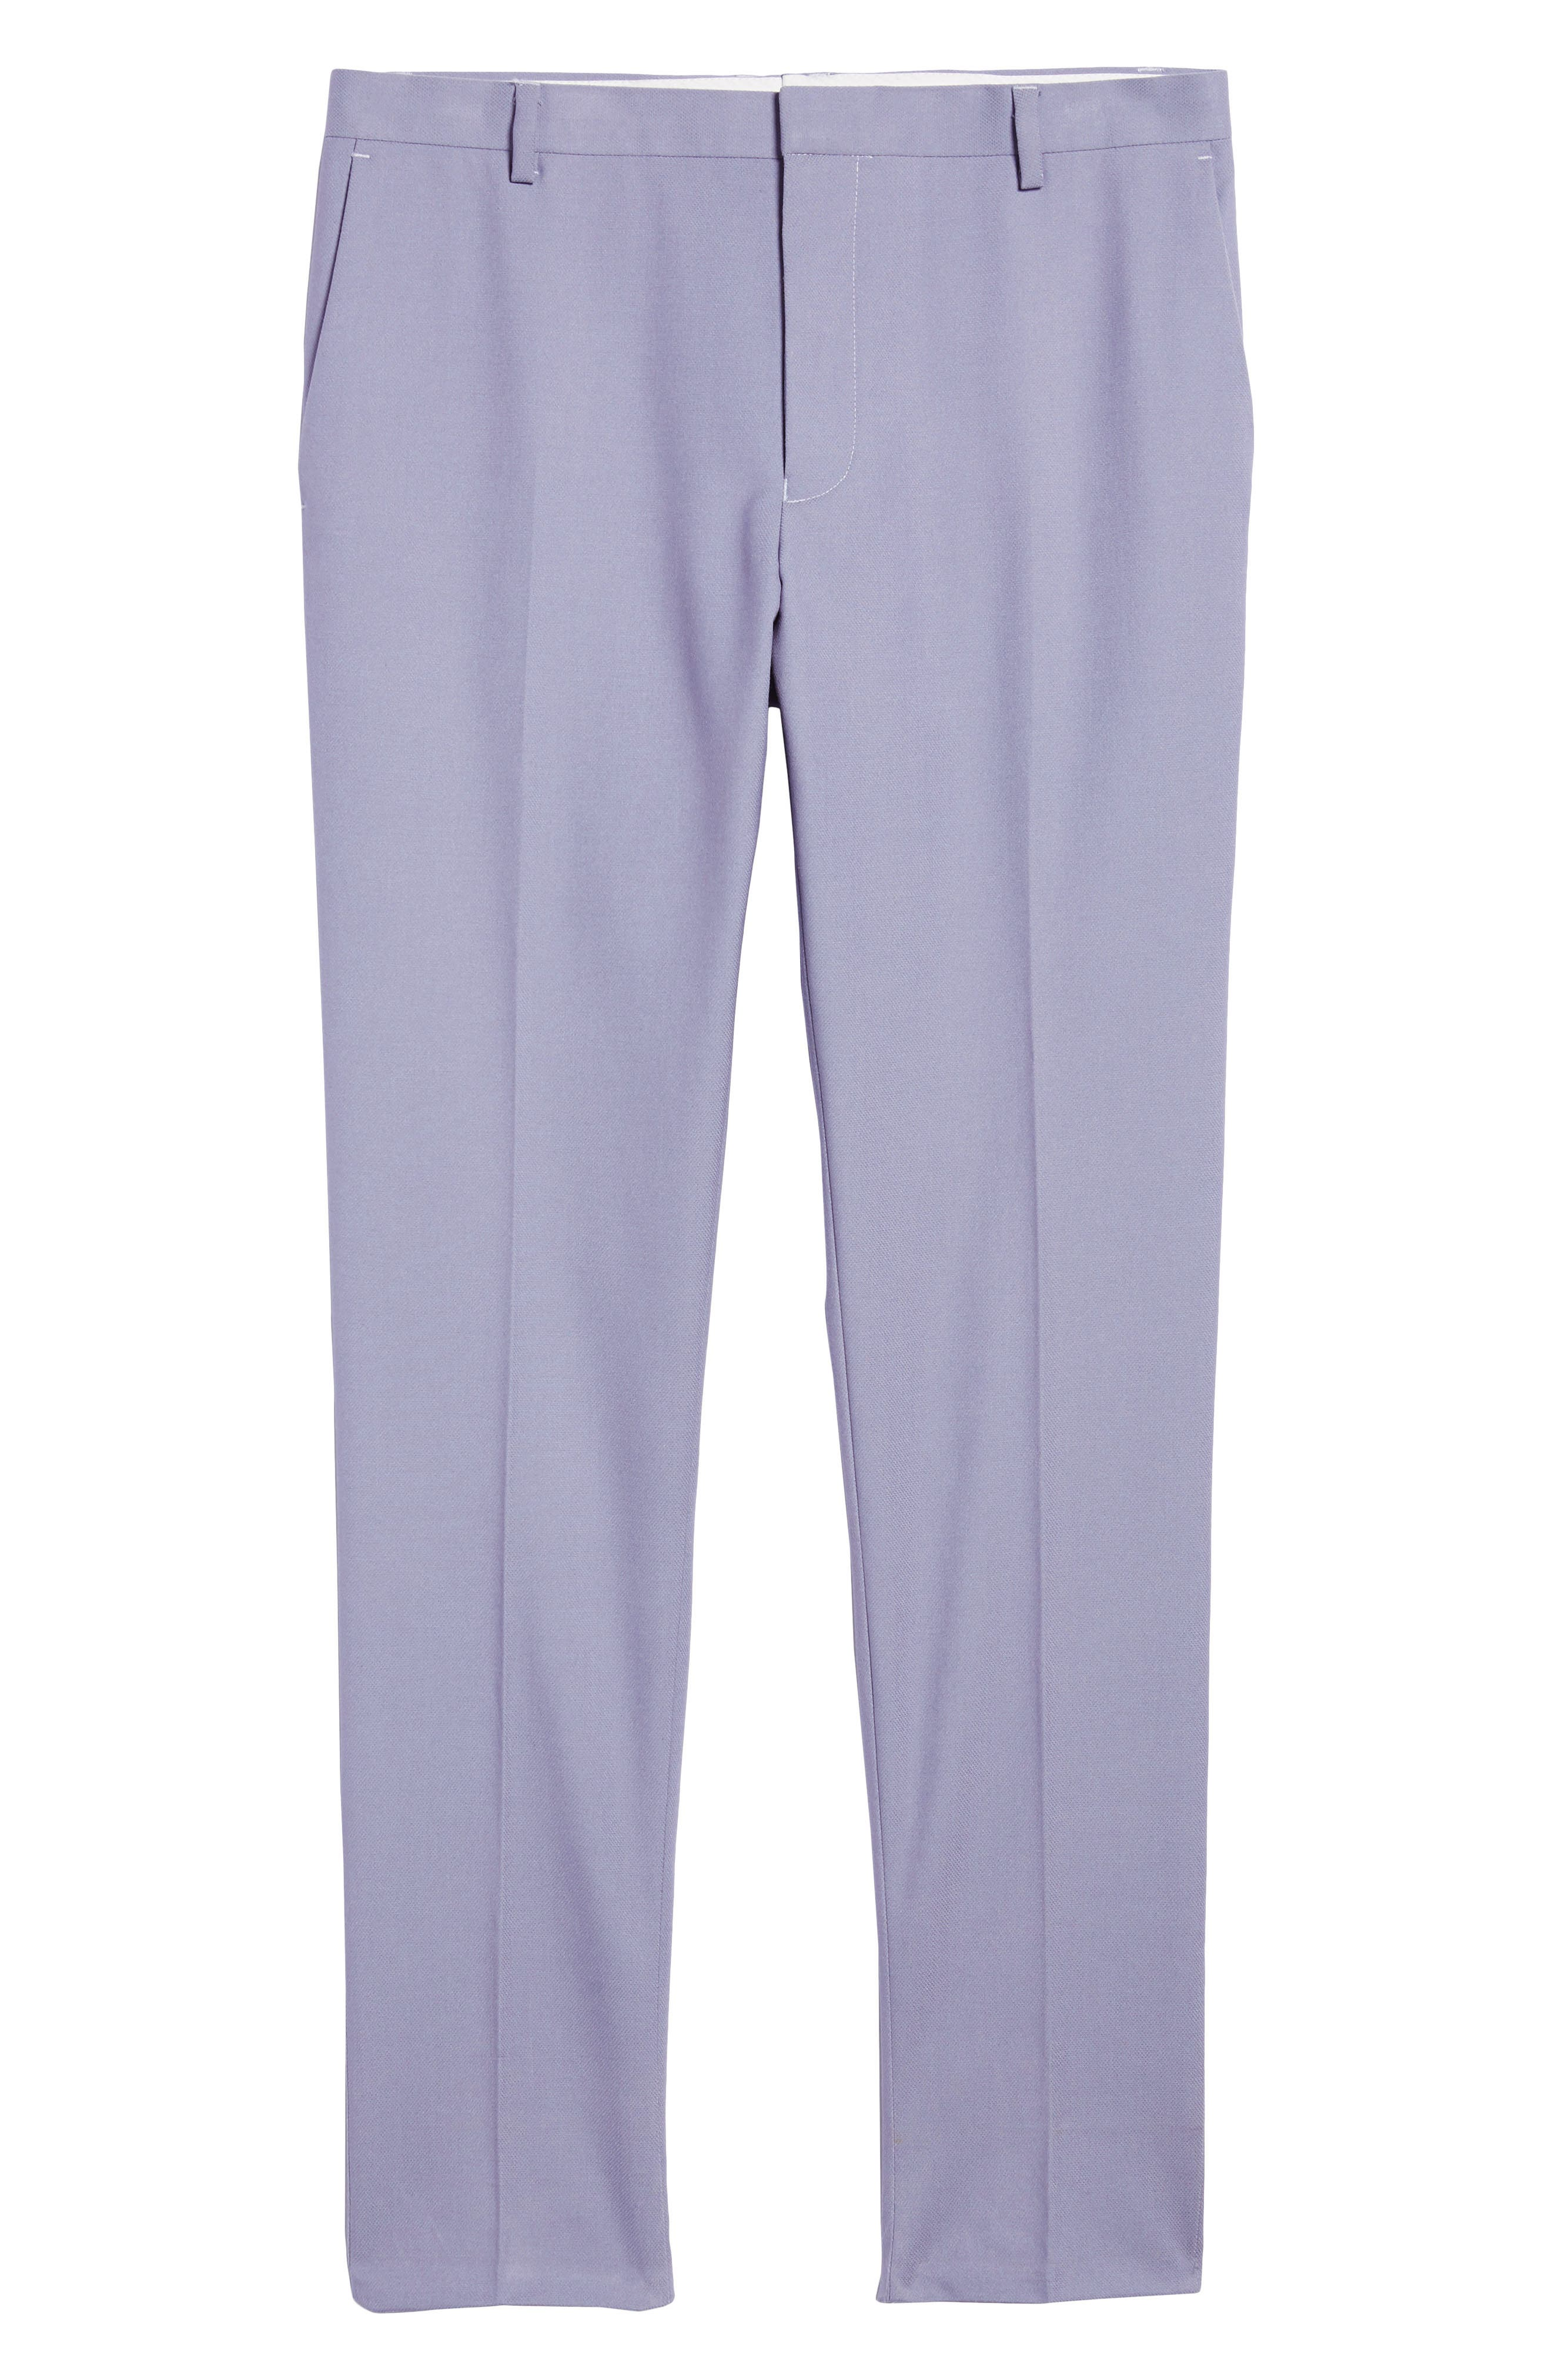 Skinny Fit Suit Trousers,                             Alternate thumbnail 12, color,